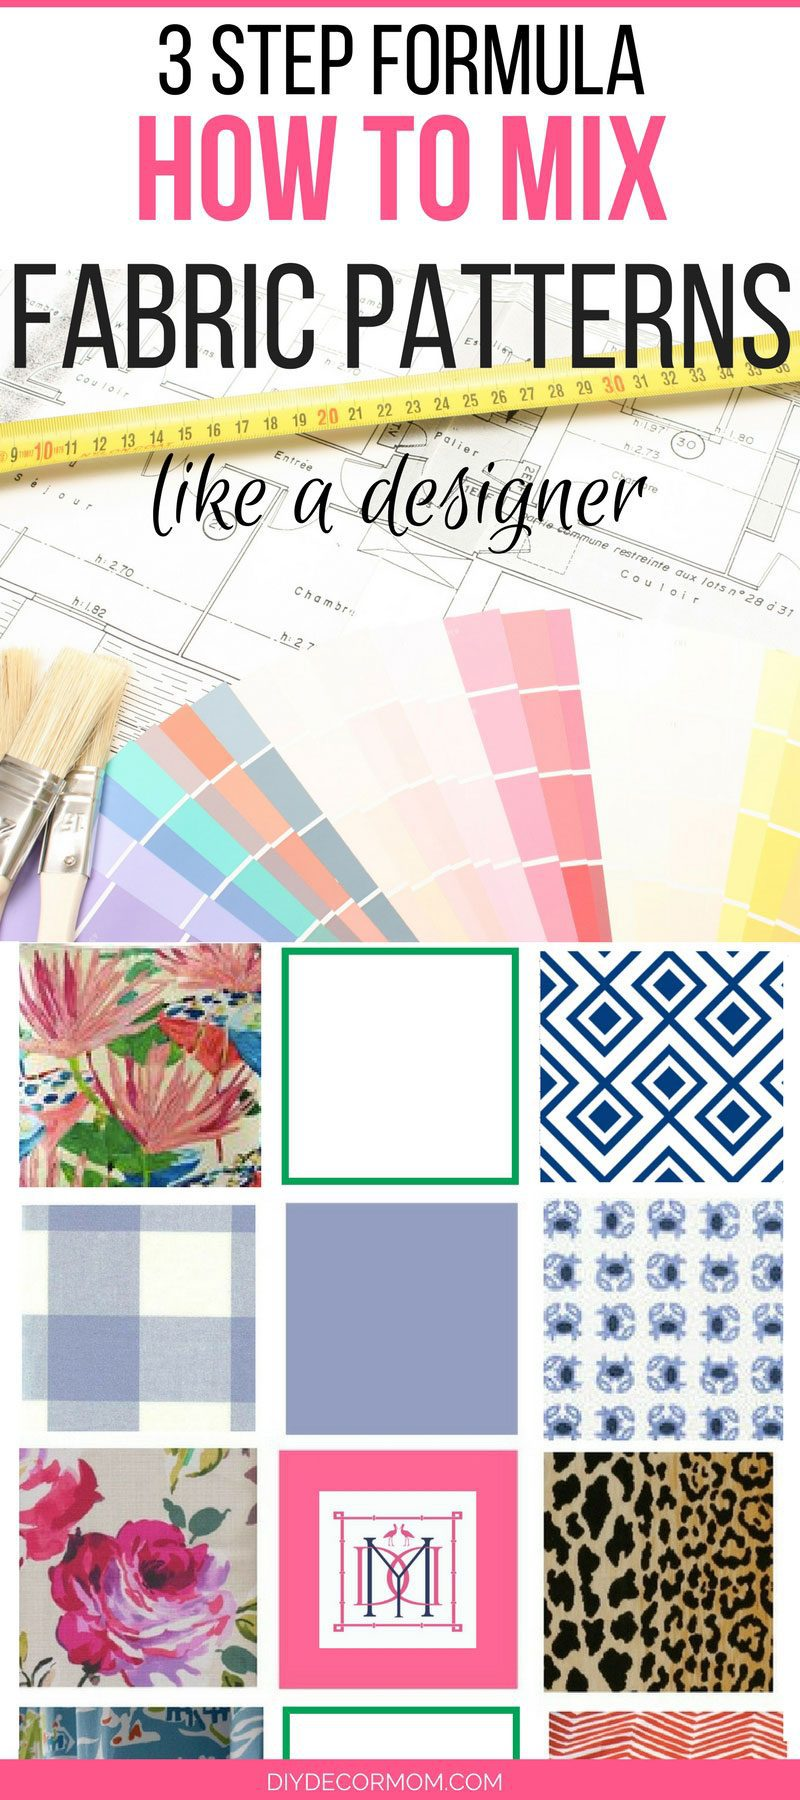 mixing fabric patterns guide with steps to mix colors and pattern in your home decor by DIY Decor Mom